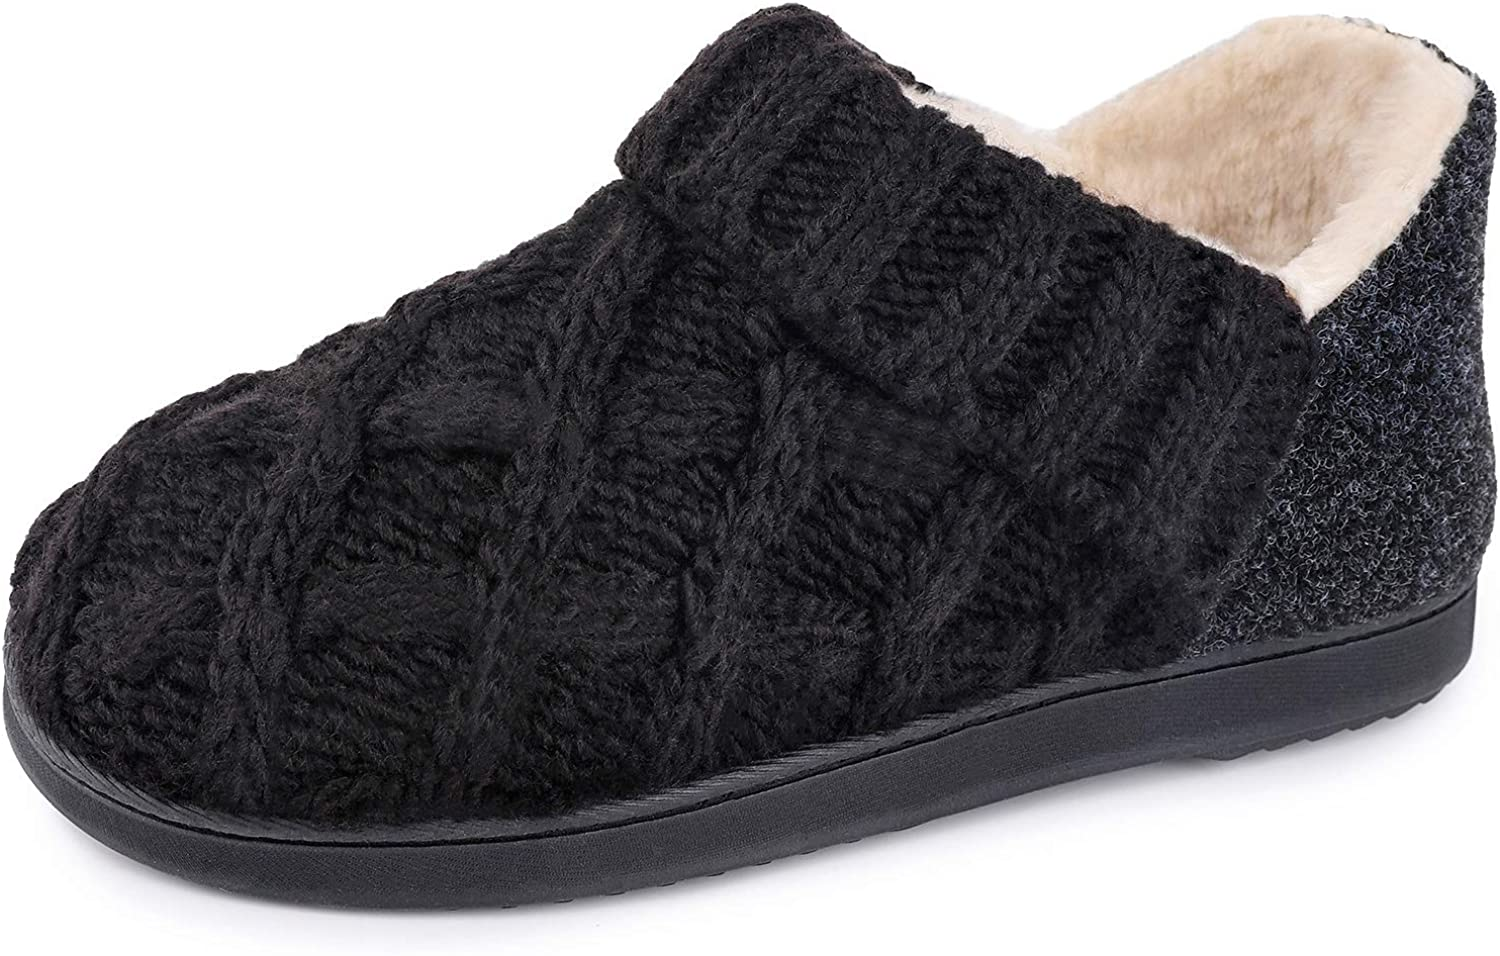 Women's Warm Wool Yarn Cable Bootie Memory Knitted Slippers Super intense Mesa Mall SALE